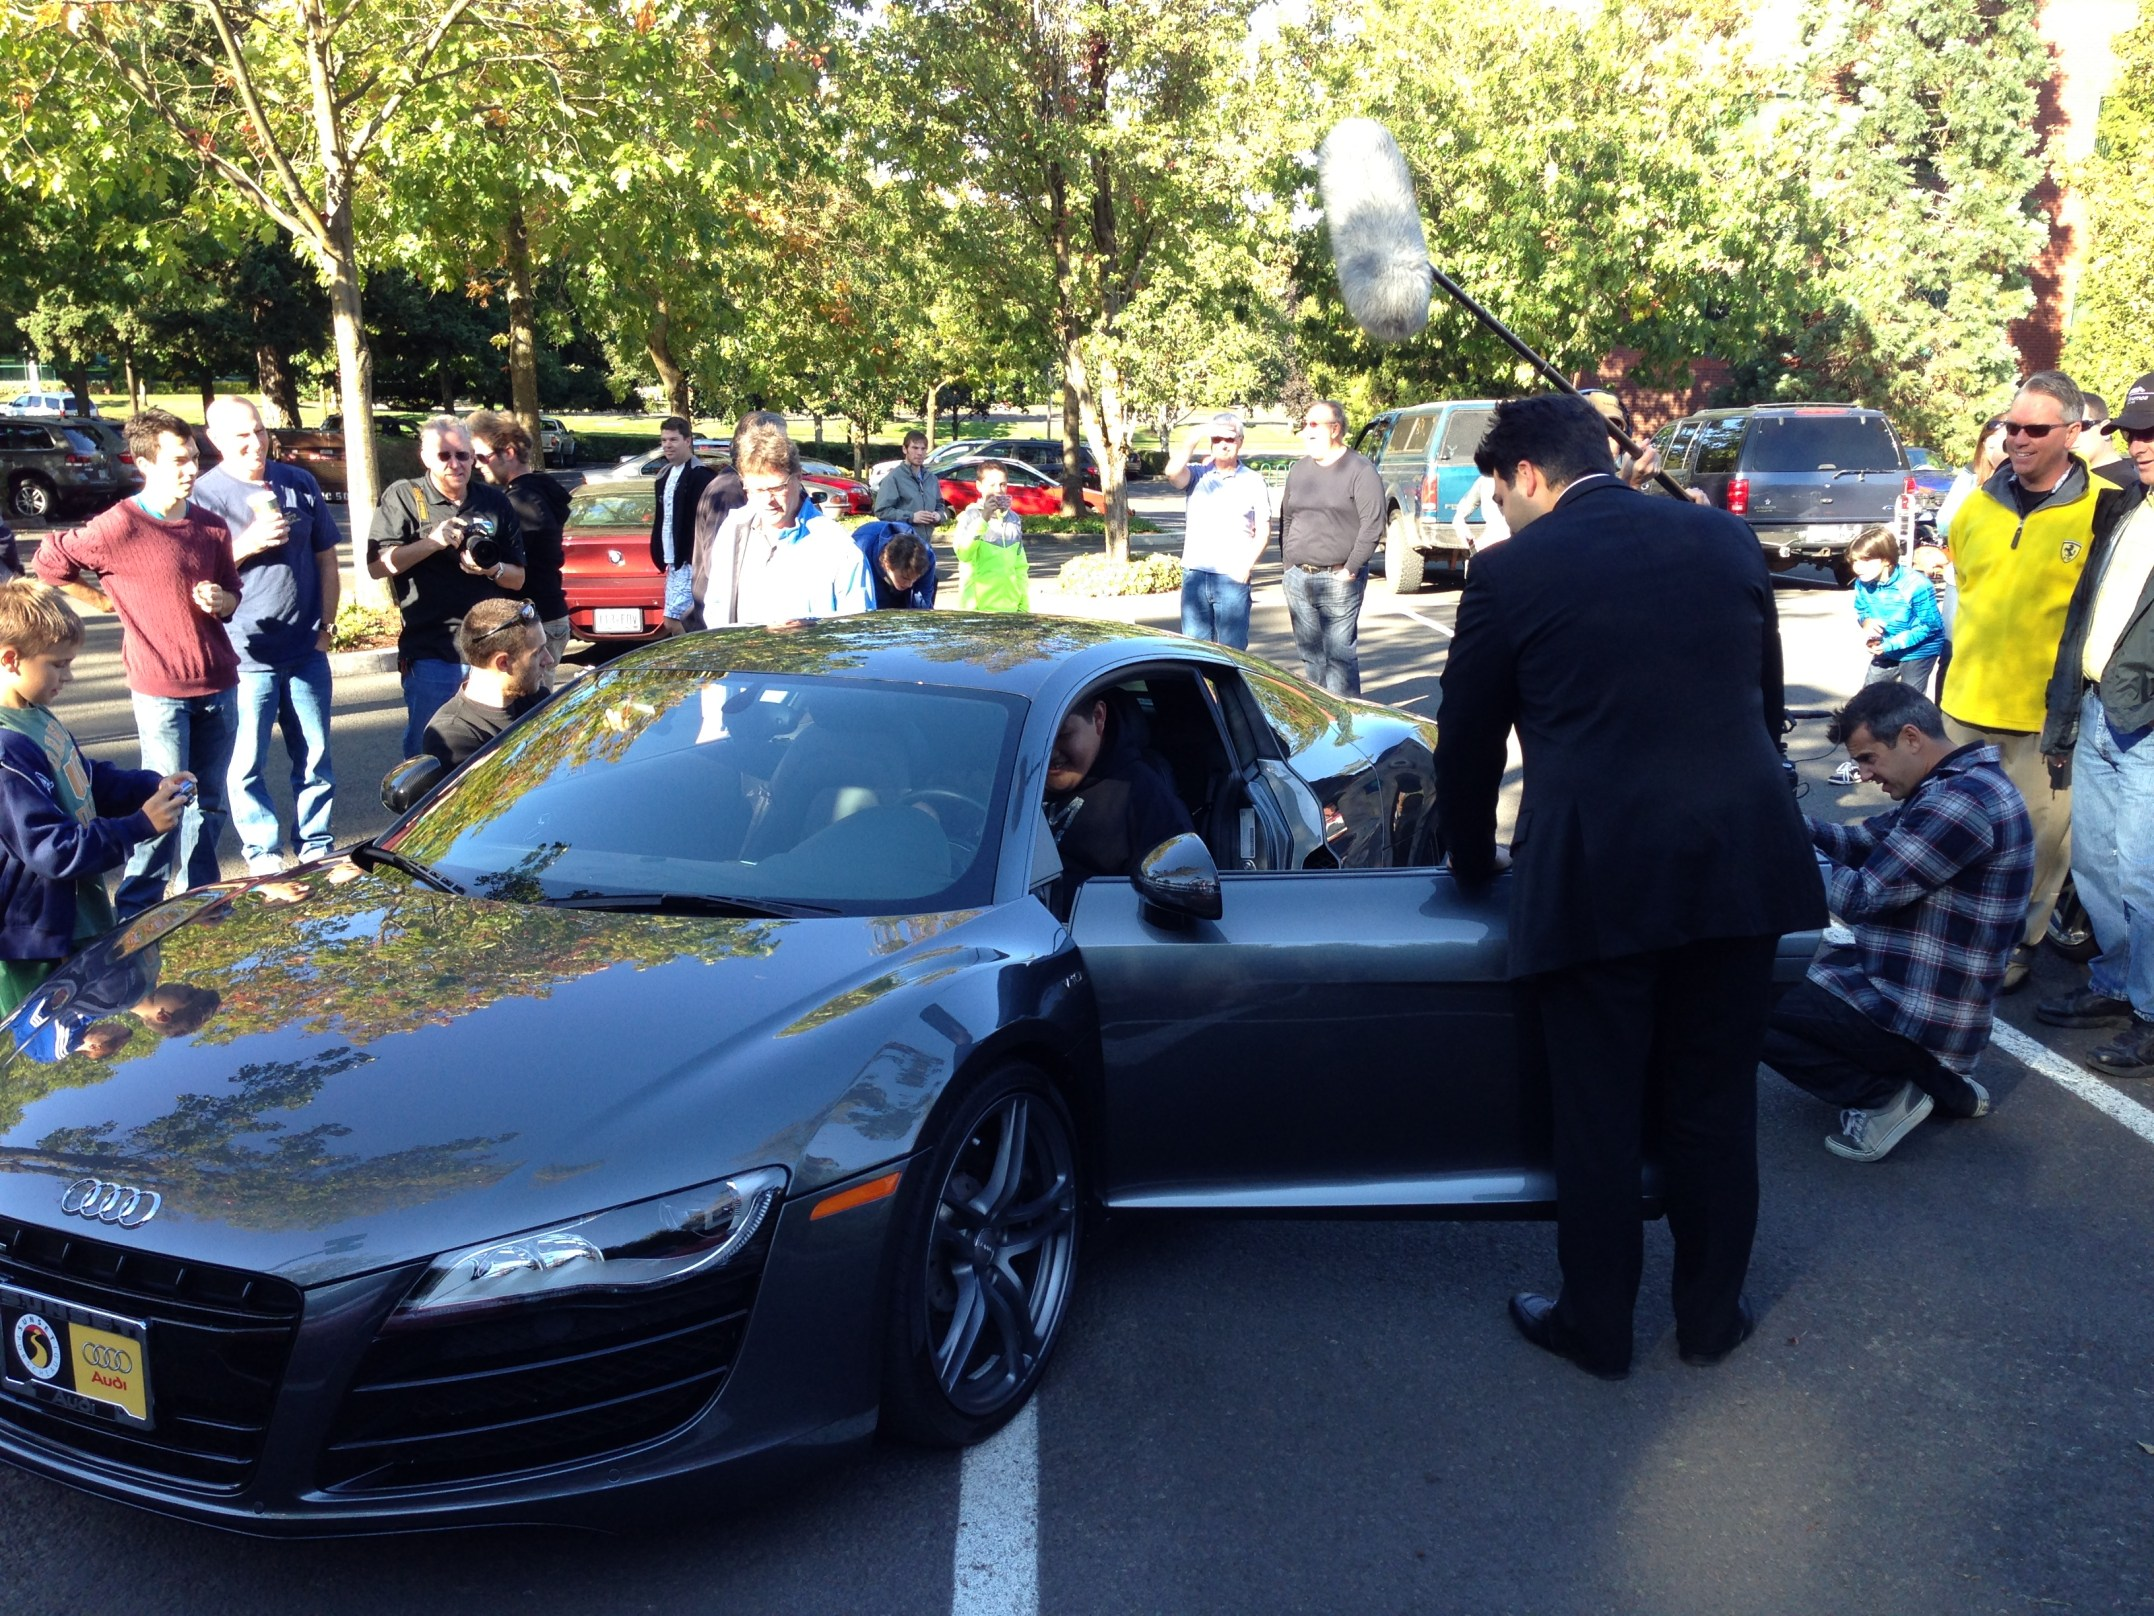 #WantAnR8: One year ago this weekend…